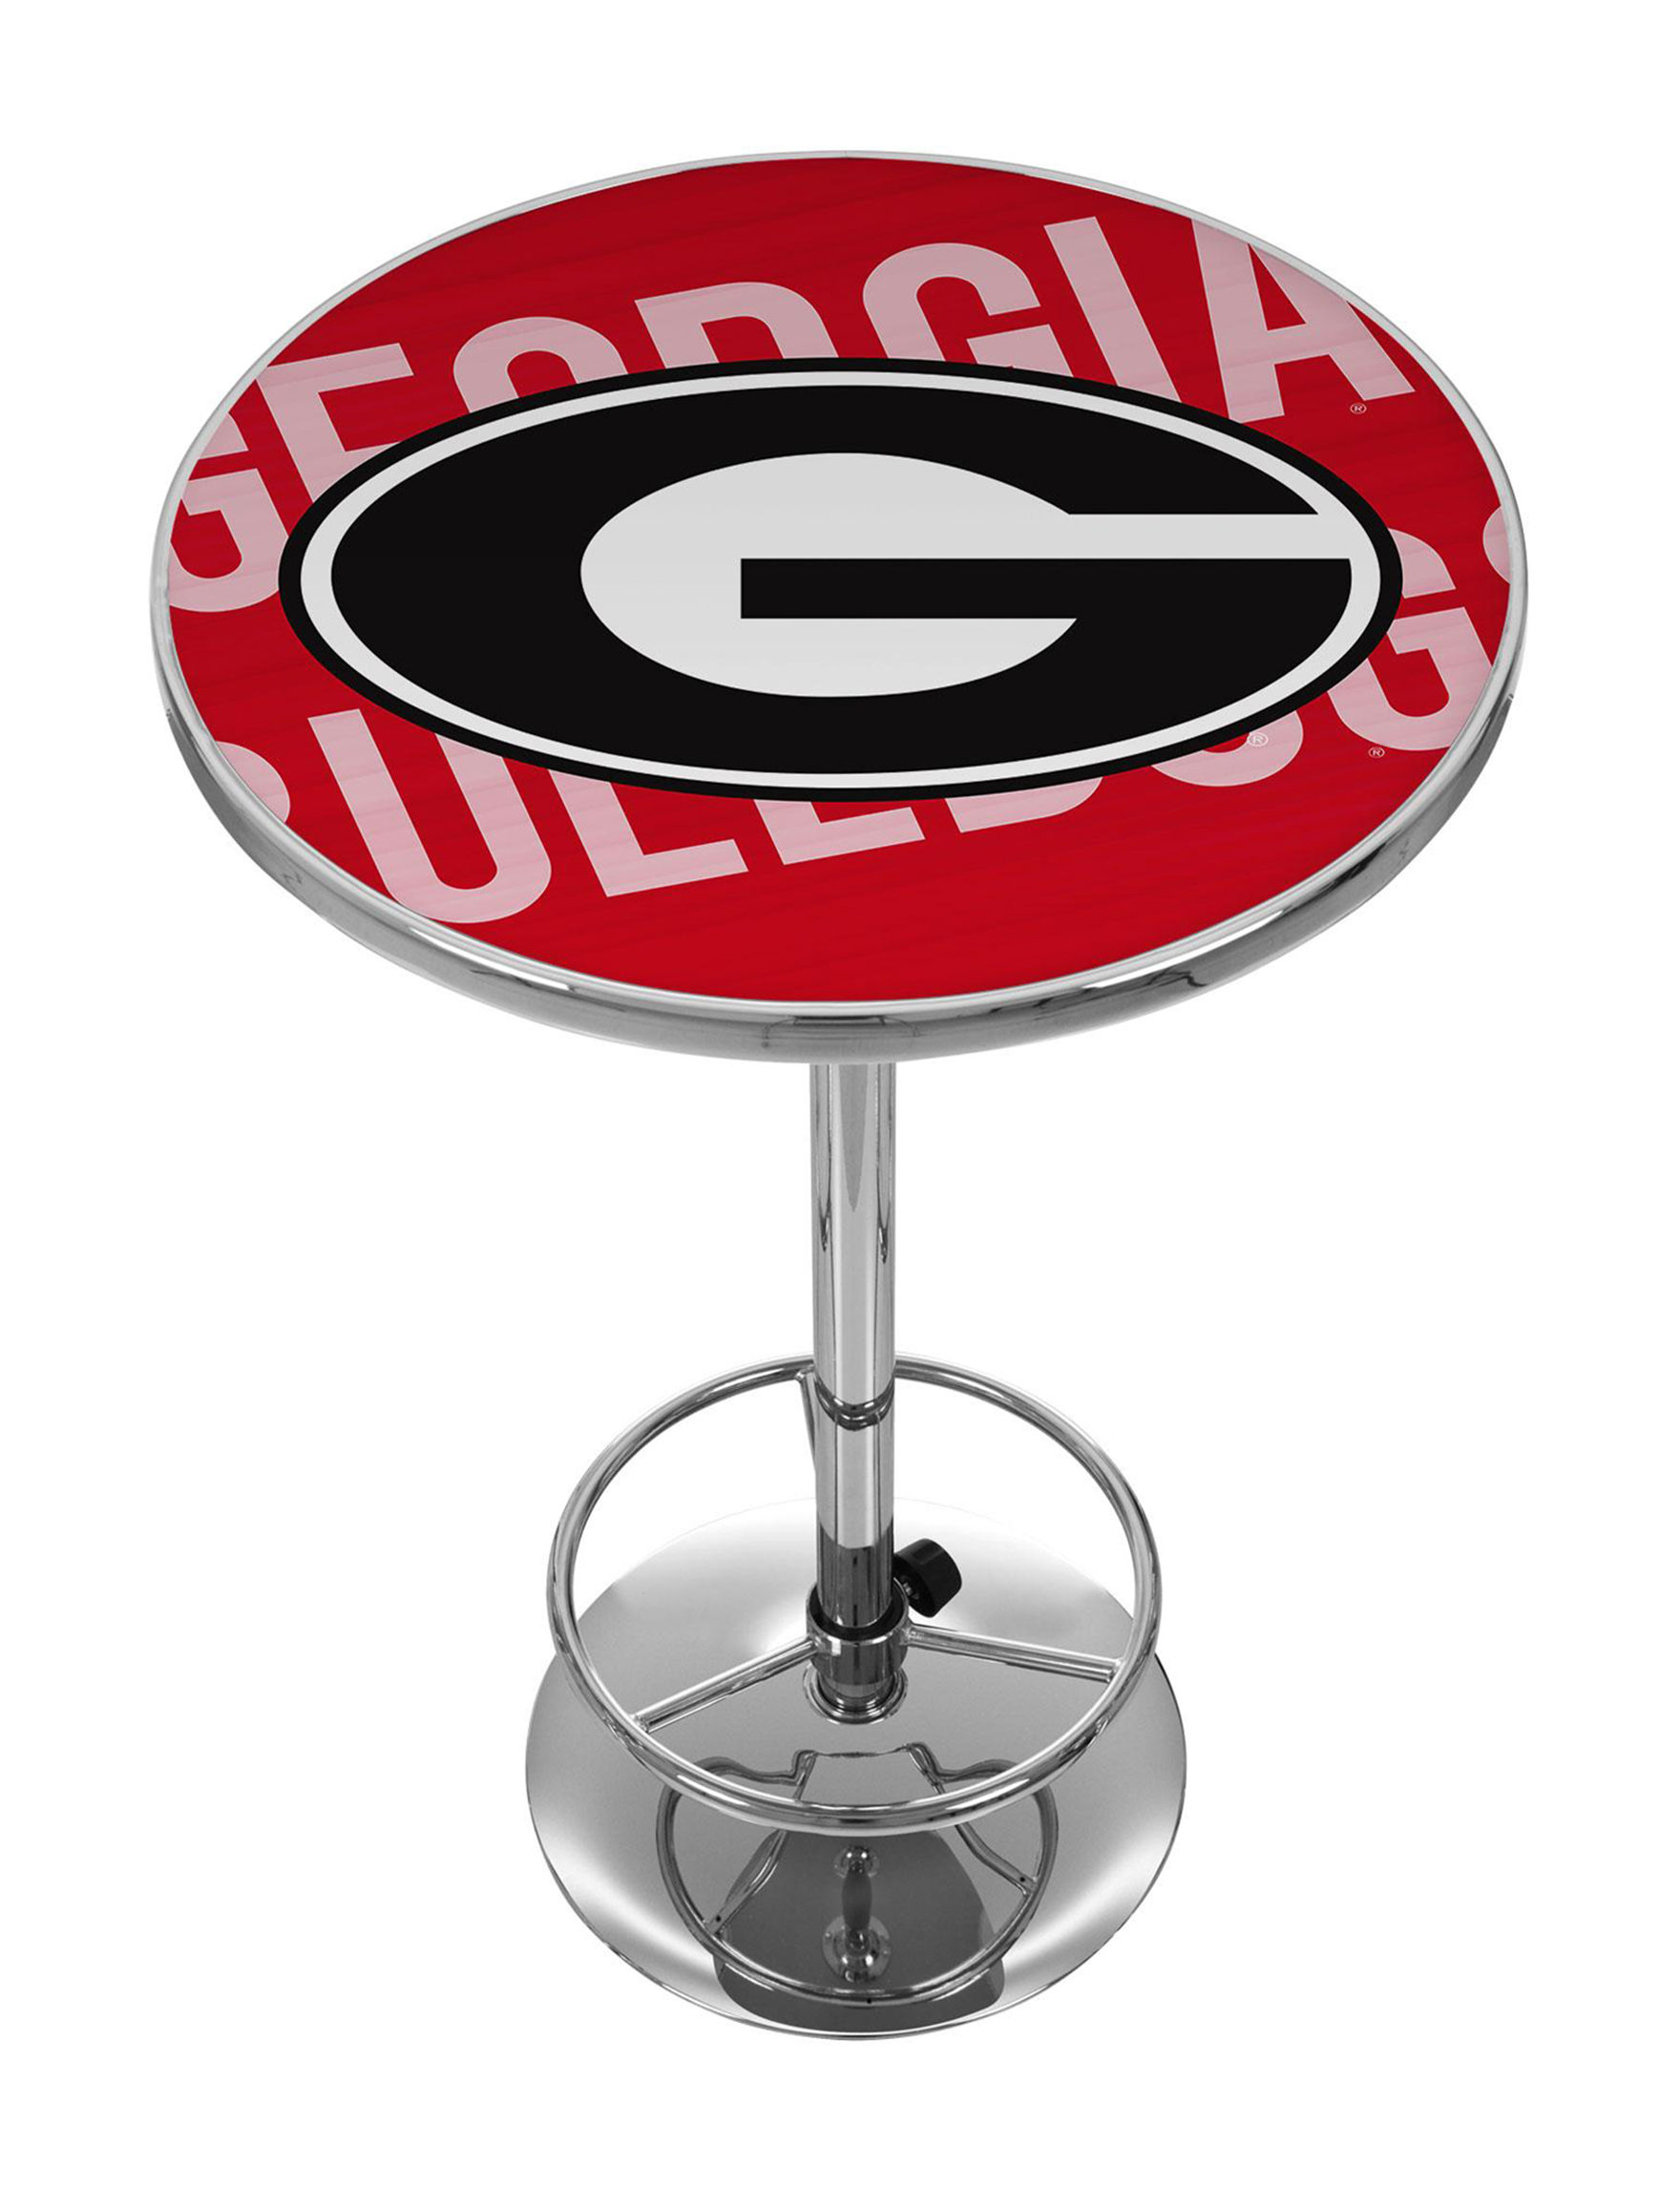 NCAA Red / Black / White Dining Tables Kitchen & Dining Furniture